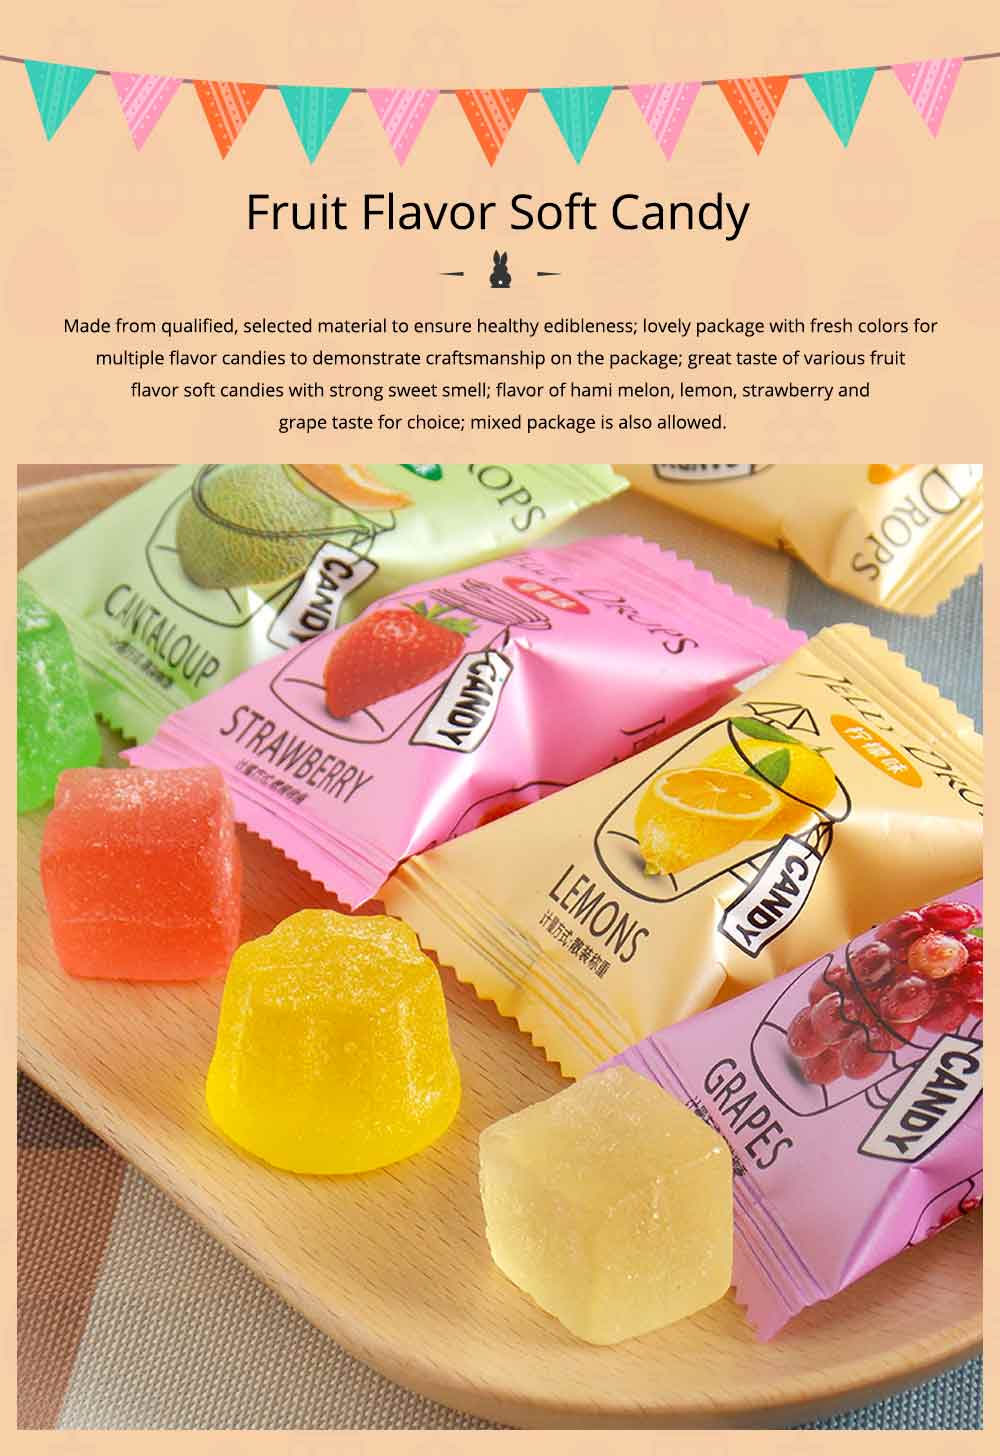 Fruit Flavor Soft Candy for Wedding Snacks, Mixed Package Multiple Flavor Bulk Package Soft Candies 0